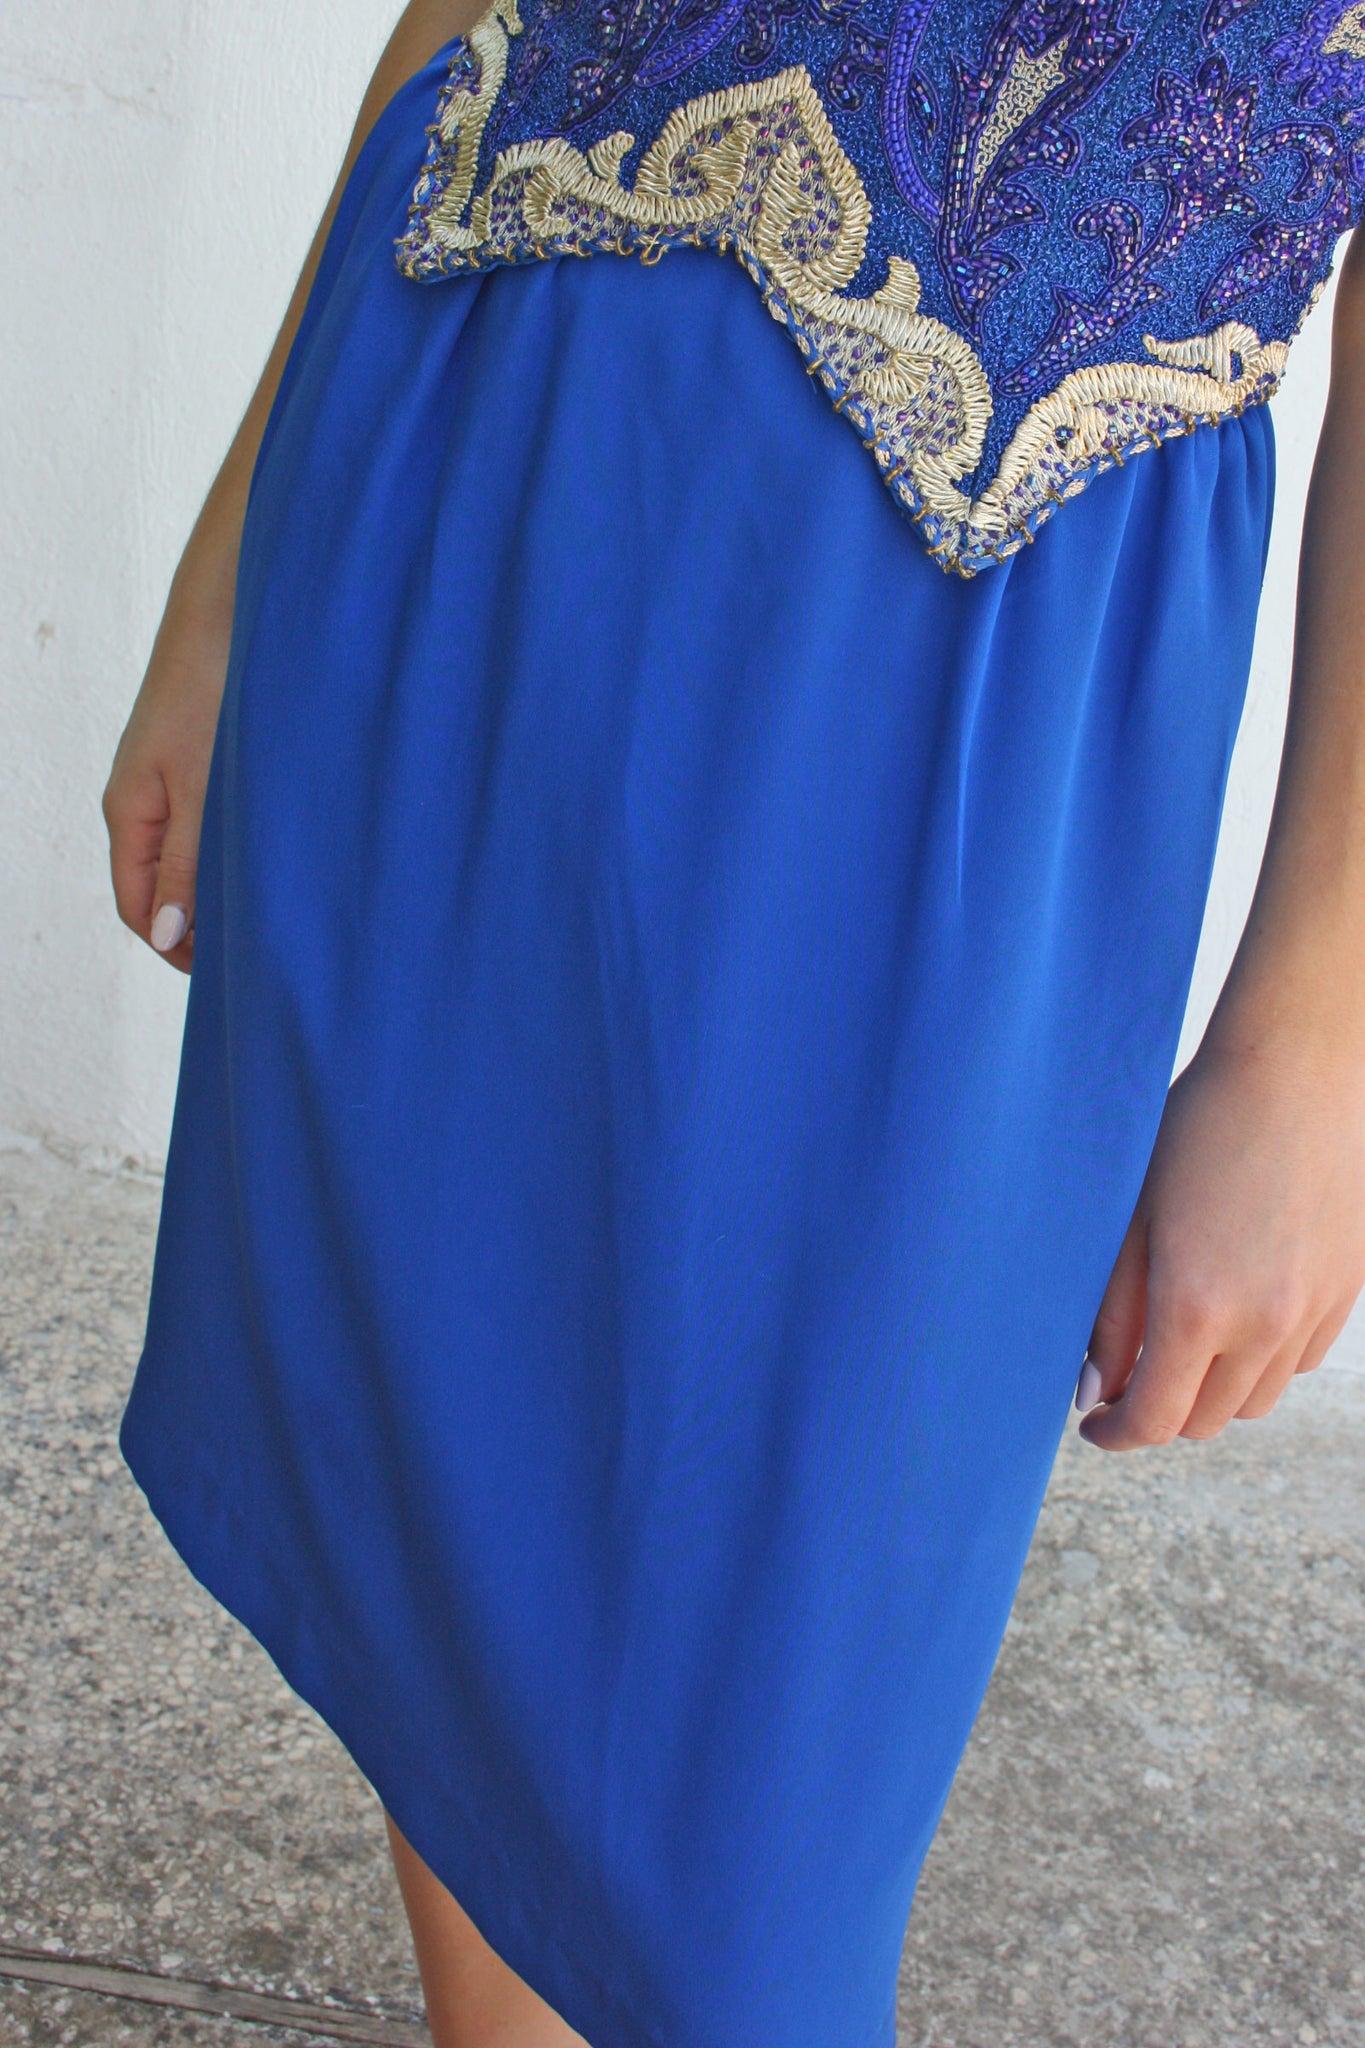 80s vintage royal blue cocktail dress - Shop SoLovesVintage